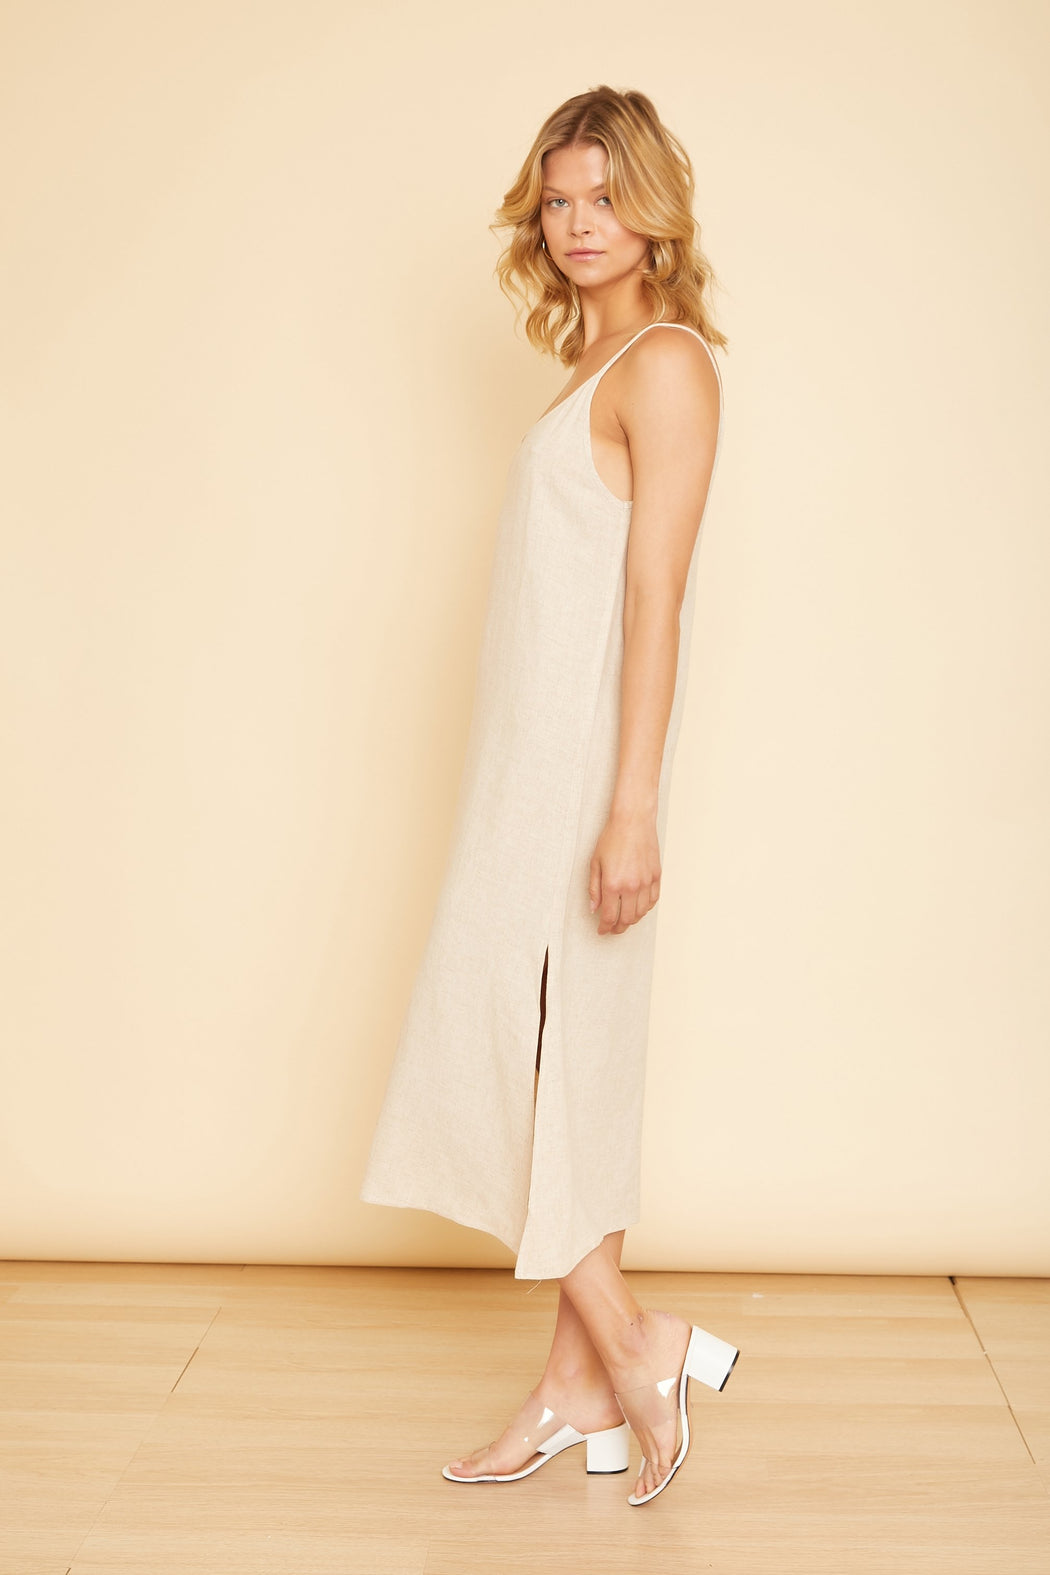 Roma Long Slit Dress - wearNYLA